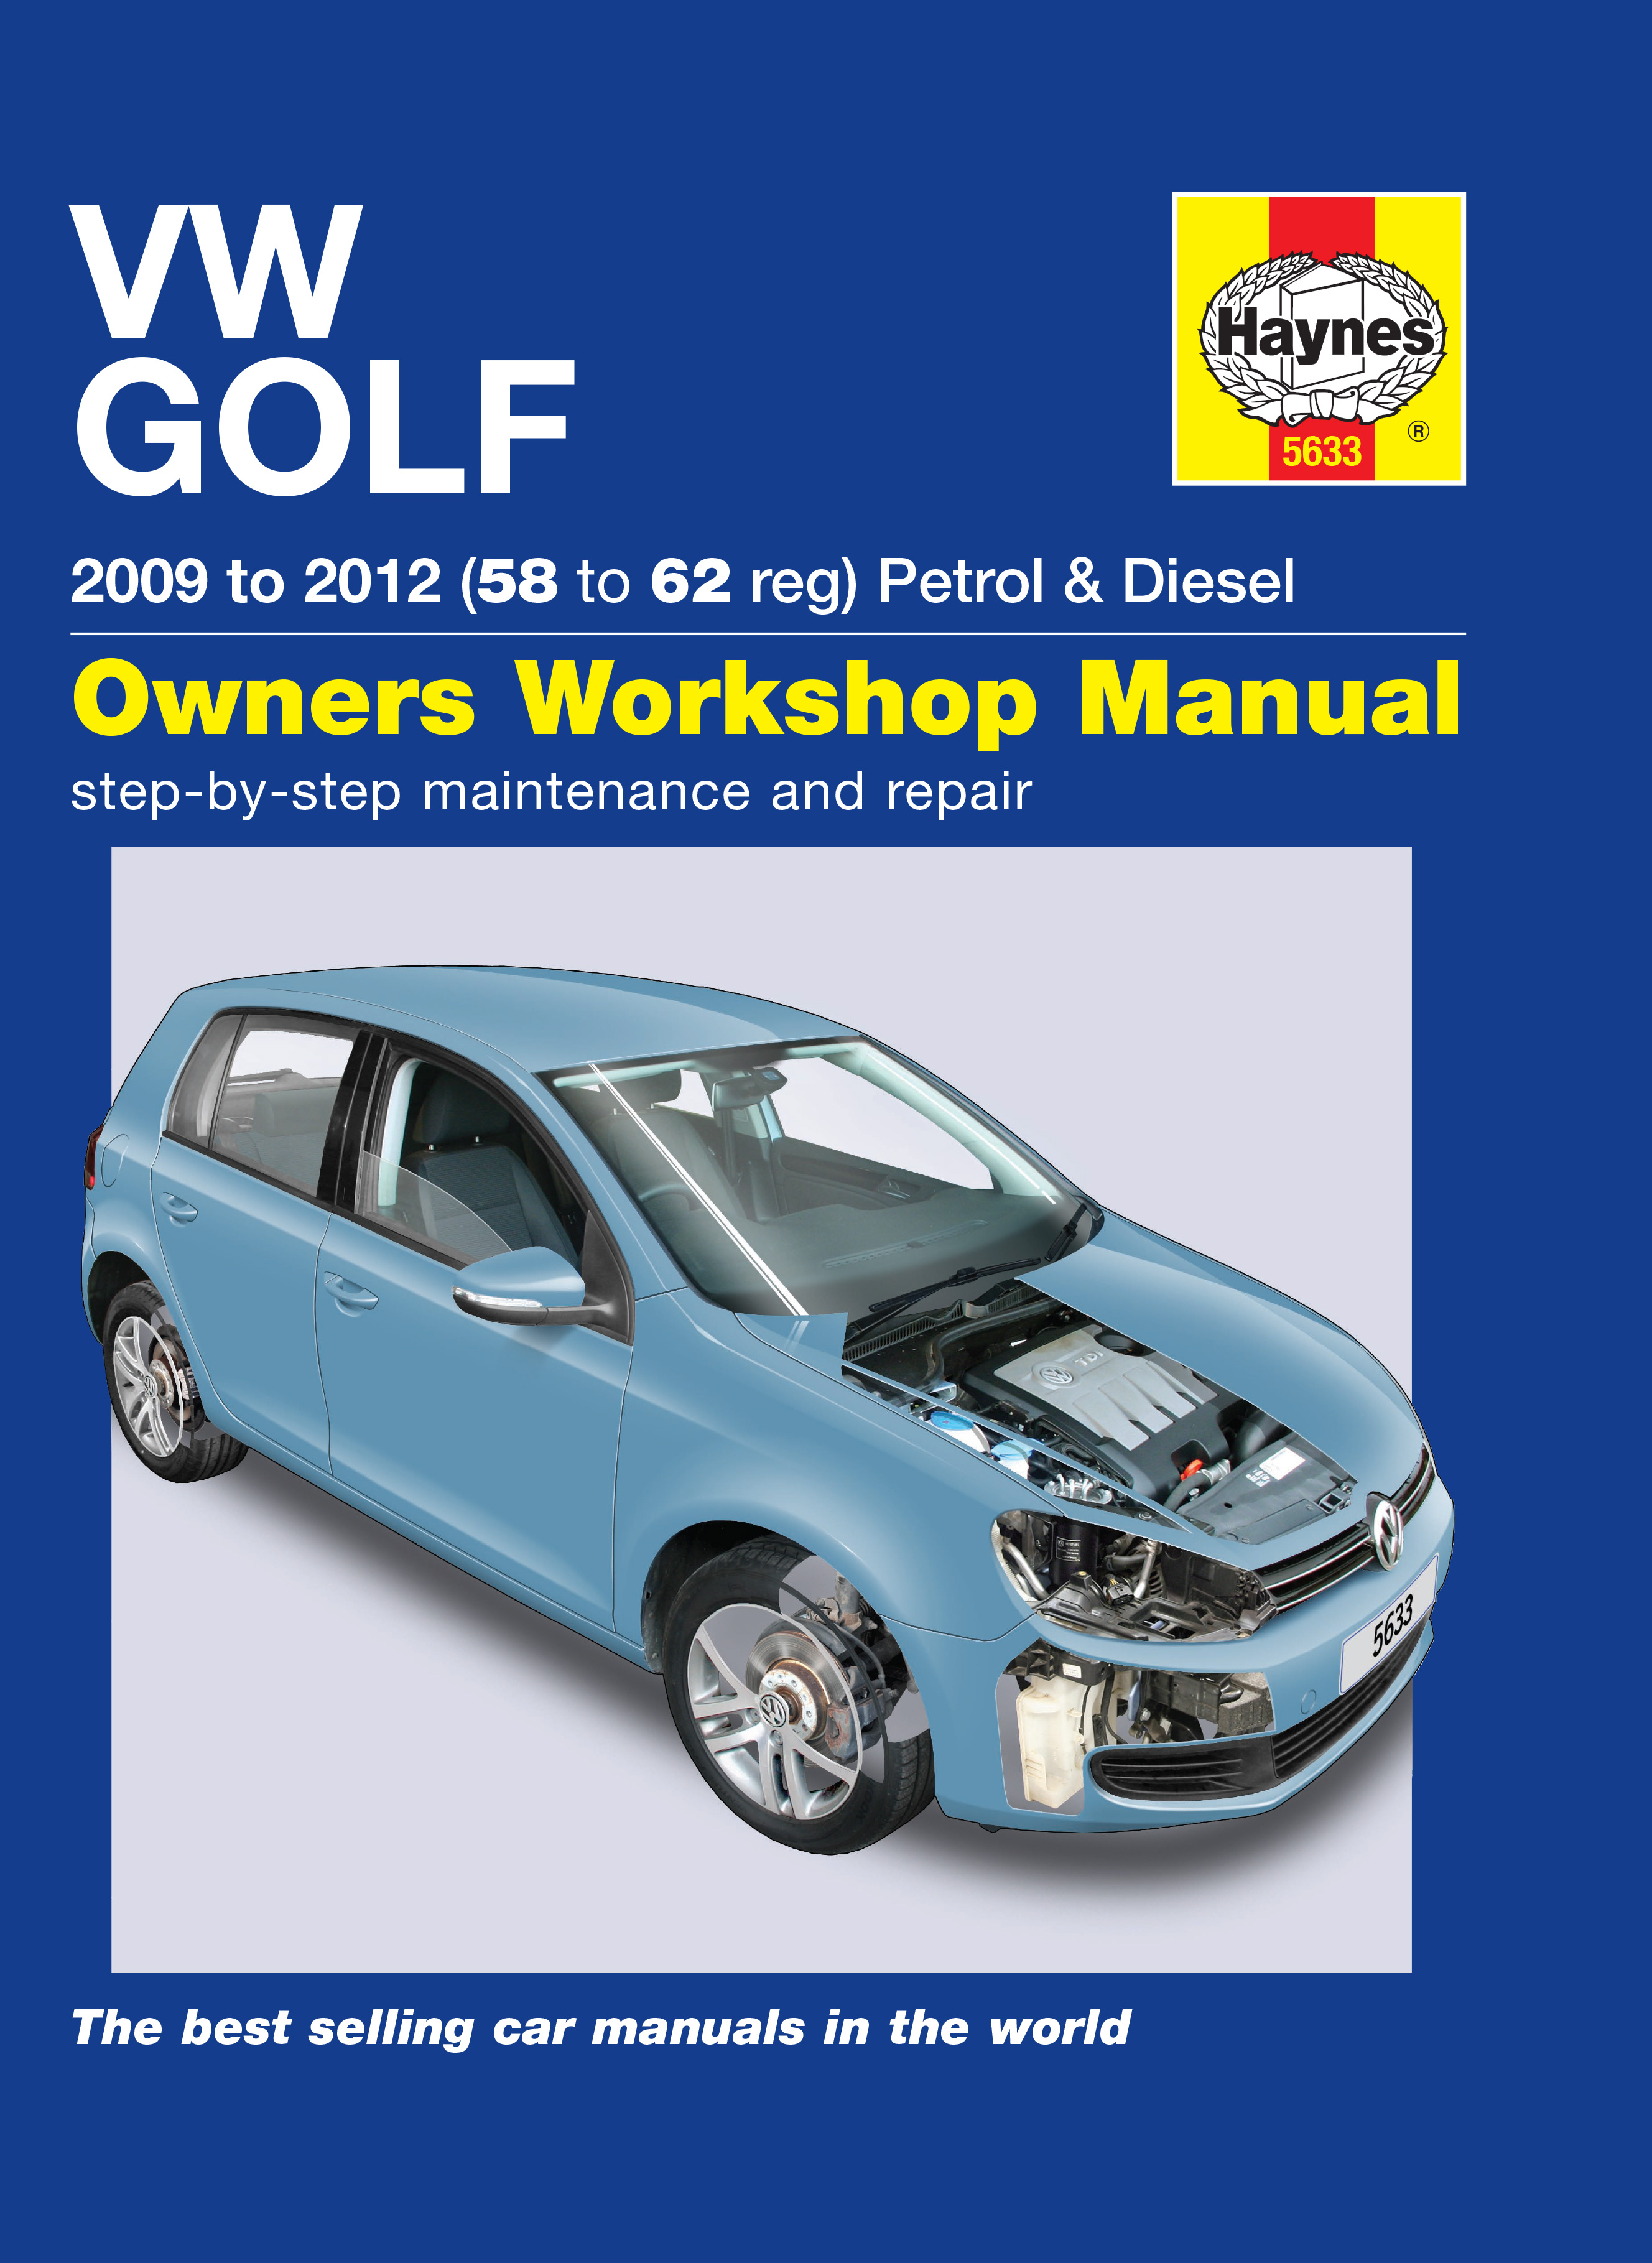 Vw Golf v repair Manual pdf